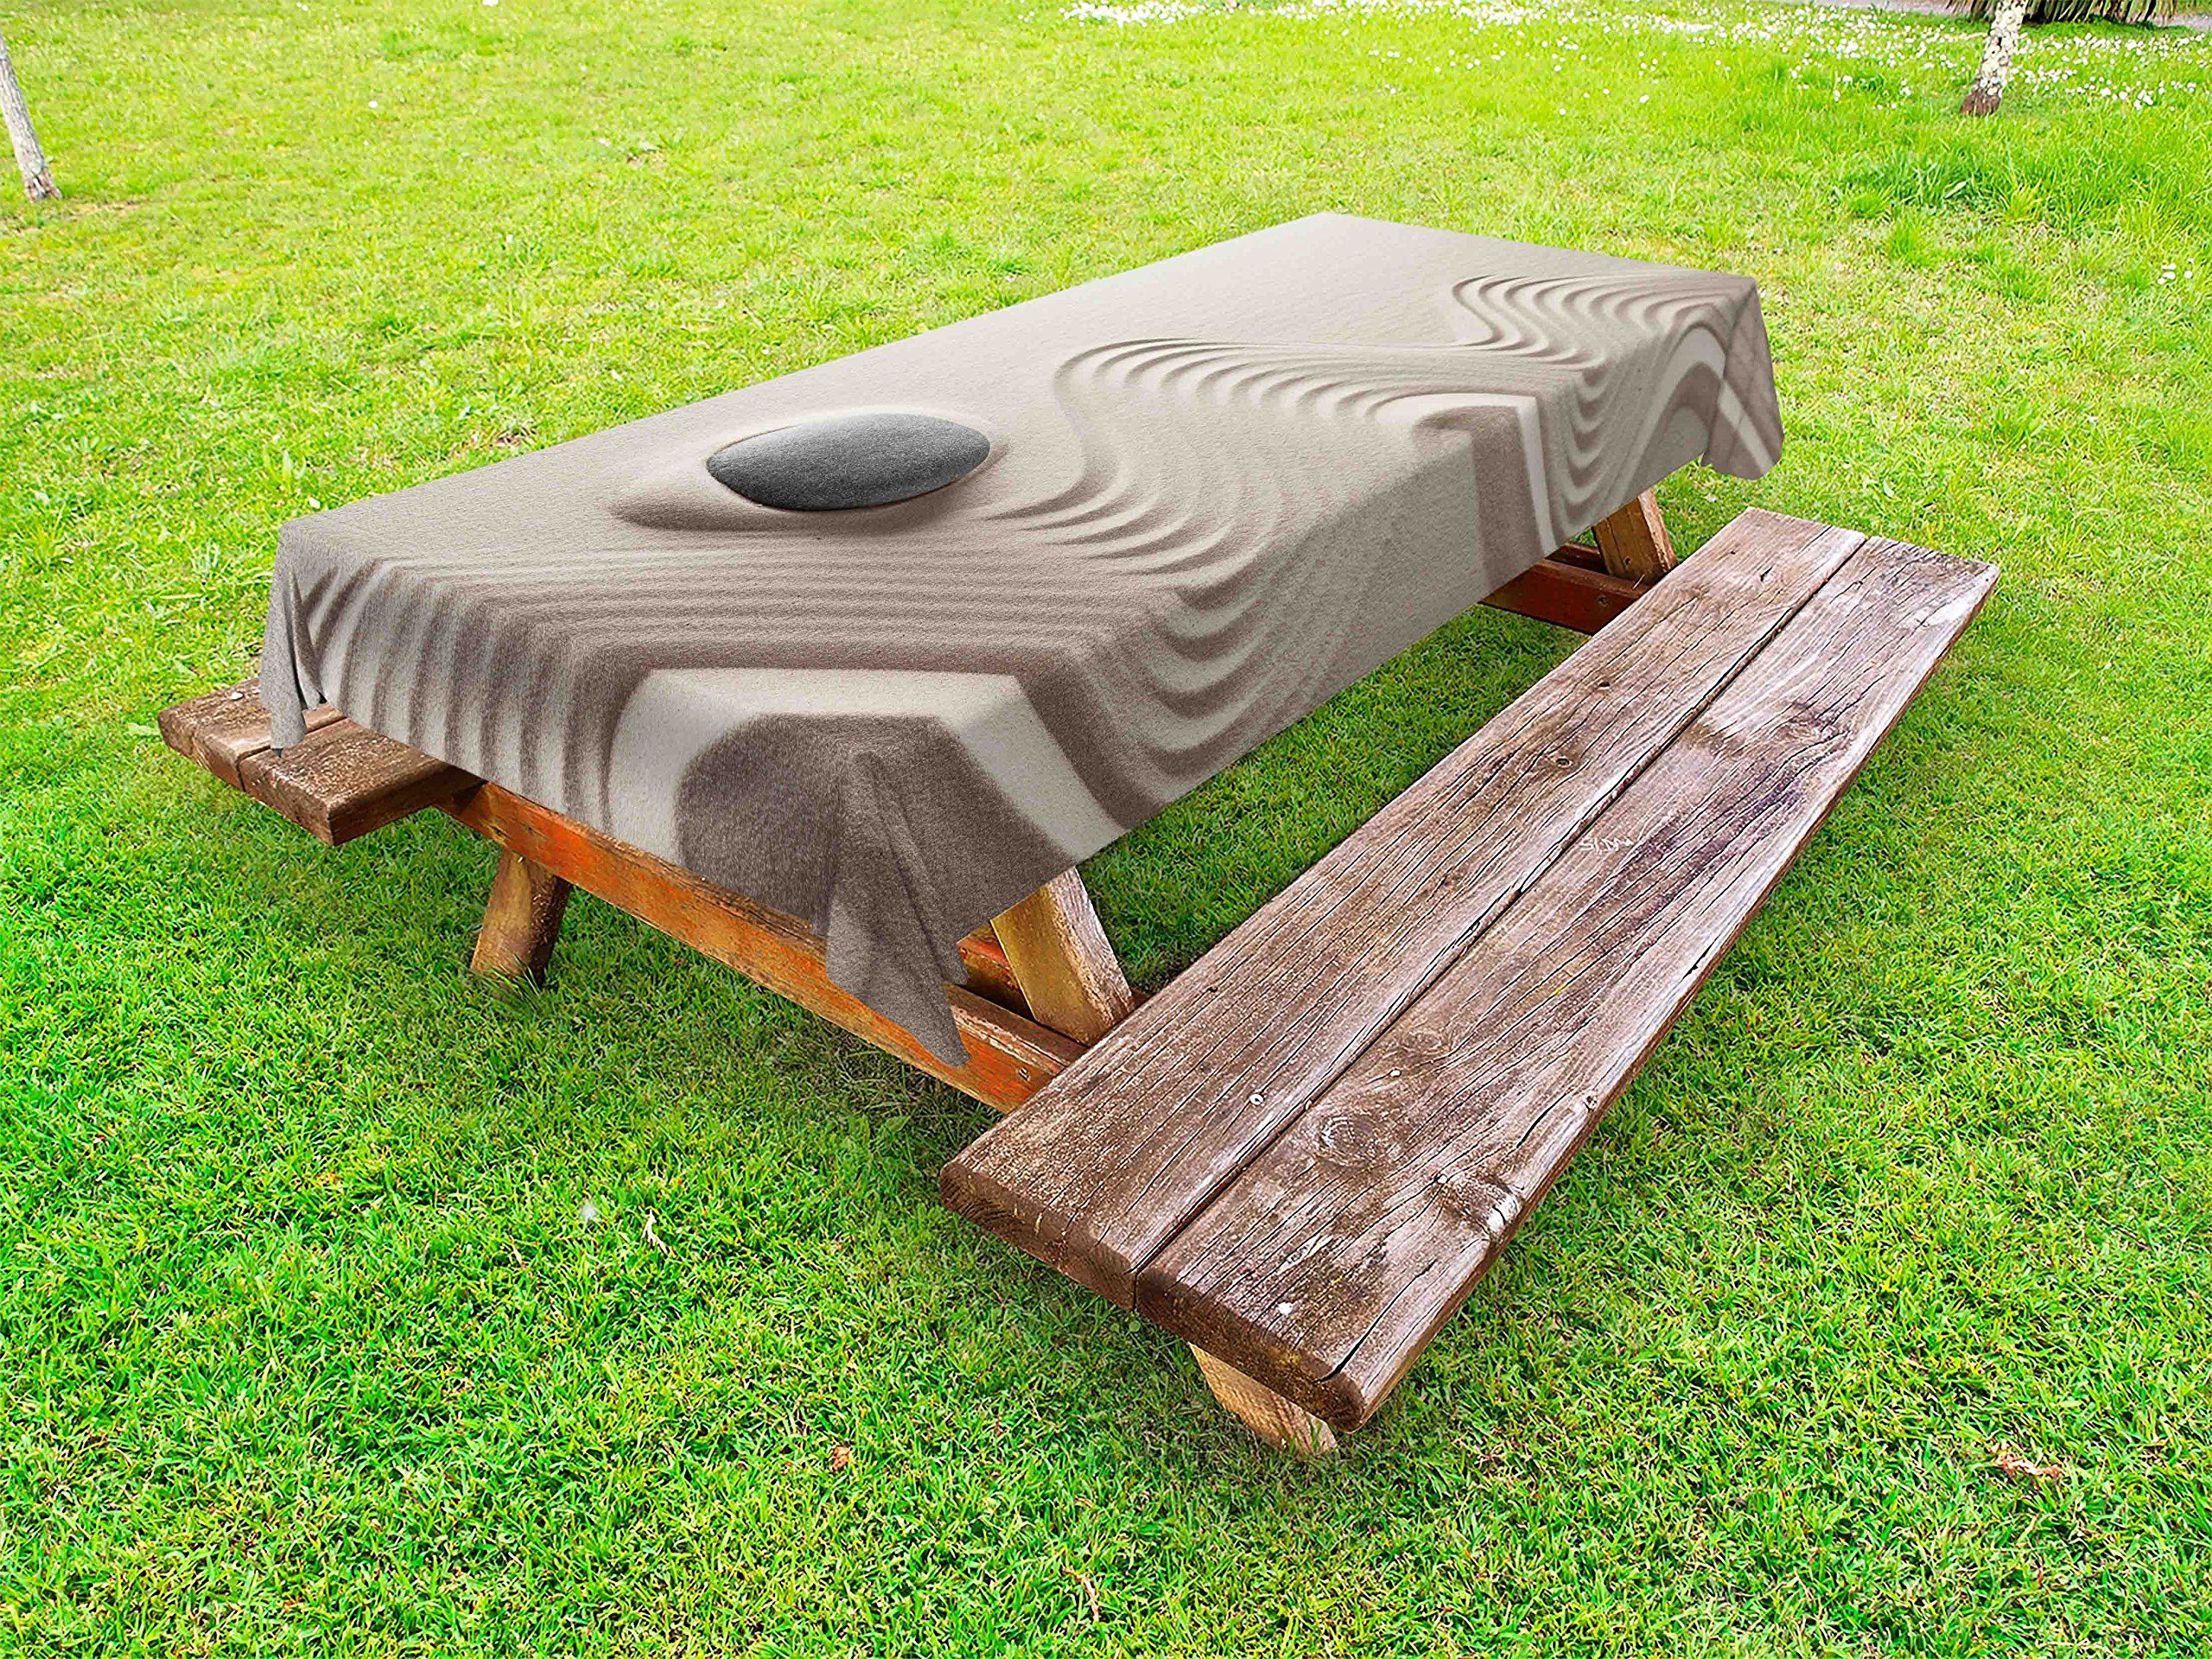 Lunarable Spa Outdoor Tablecloth, The Caribbean White Sand in Shaped Like Waves Near a Grey Zen Stones Work of Art, Decorative Washable Picnic Table Cloth, 58 X 104 inches, Beige and Grey